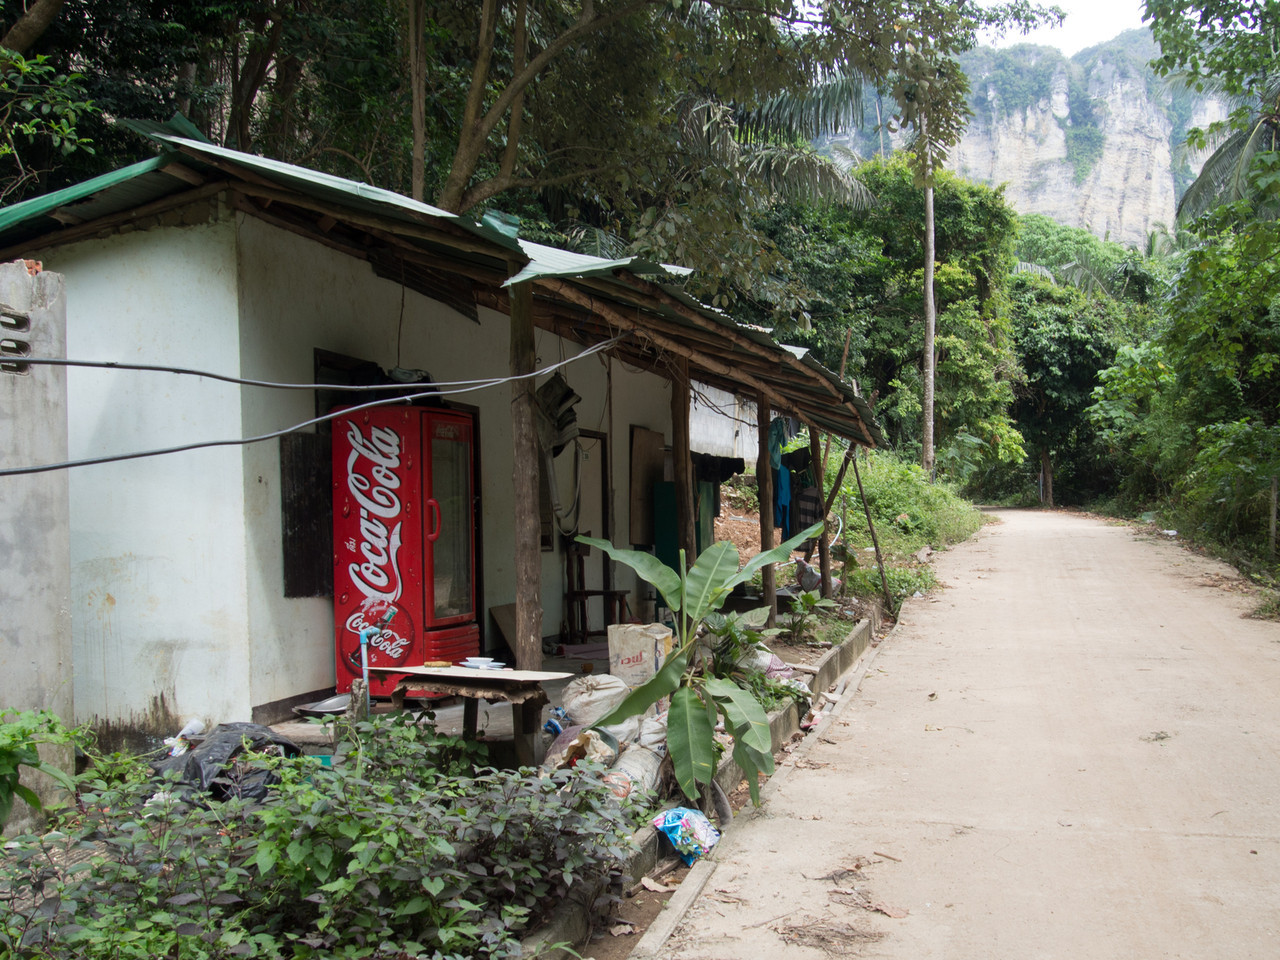 One of the more inexpensive lodgings on Tonsai